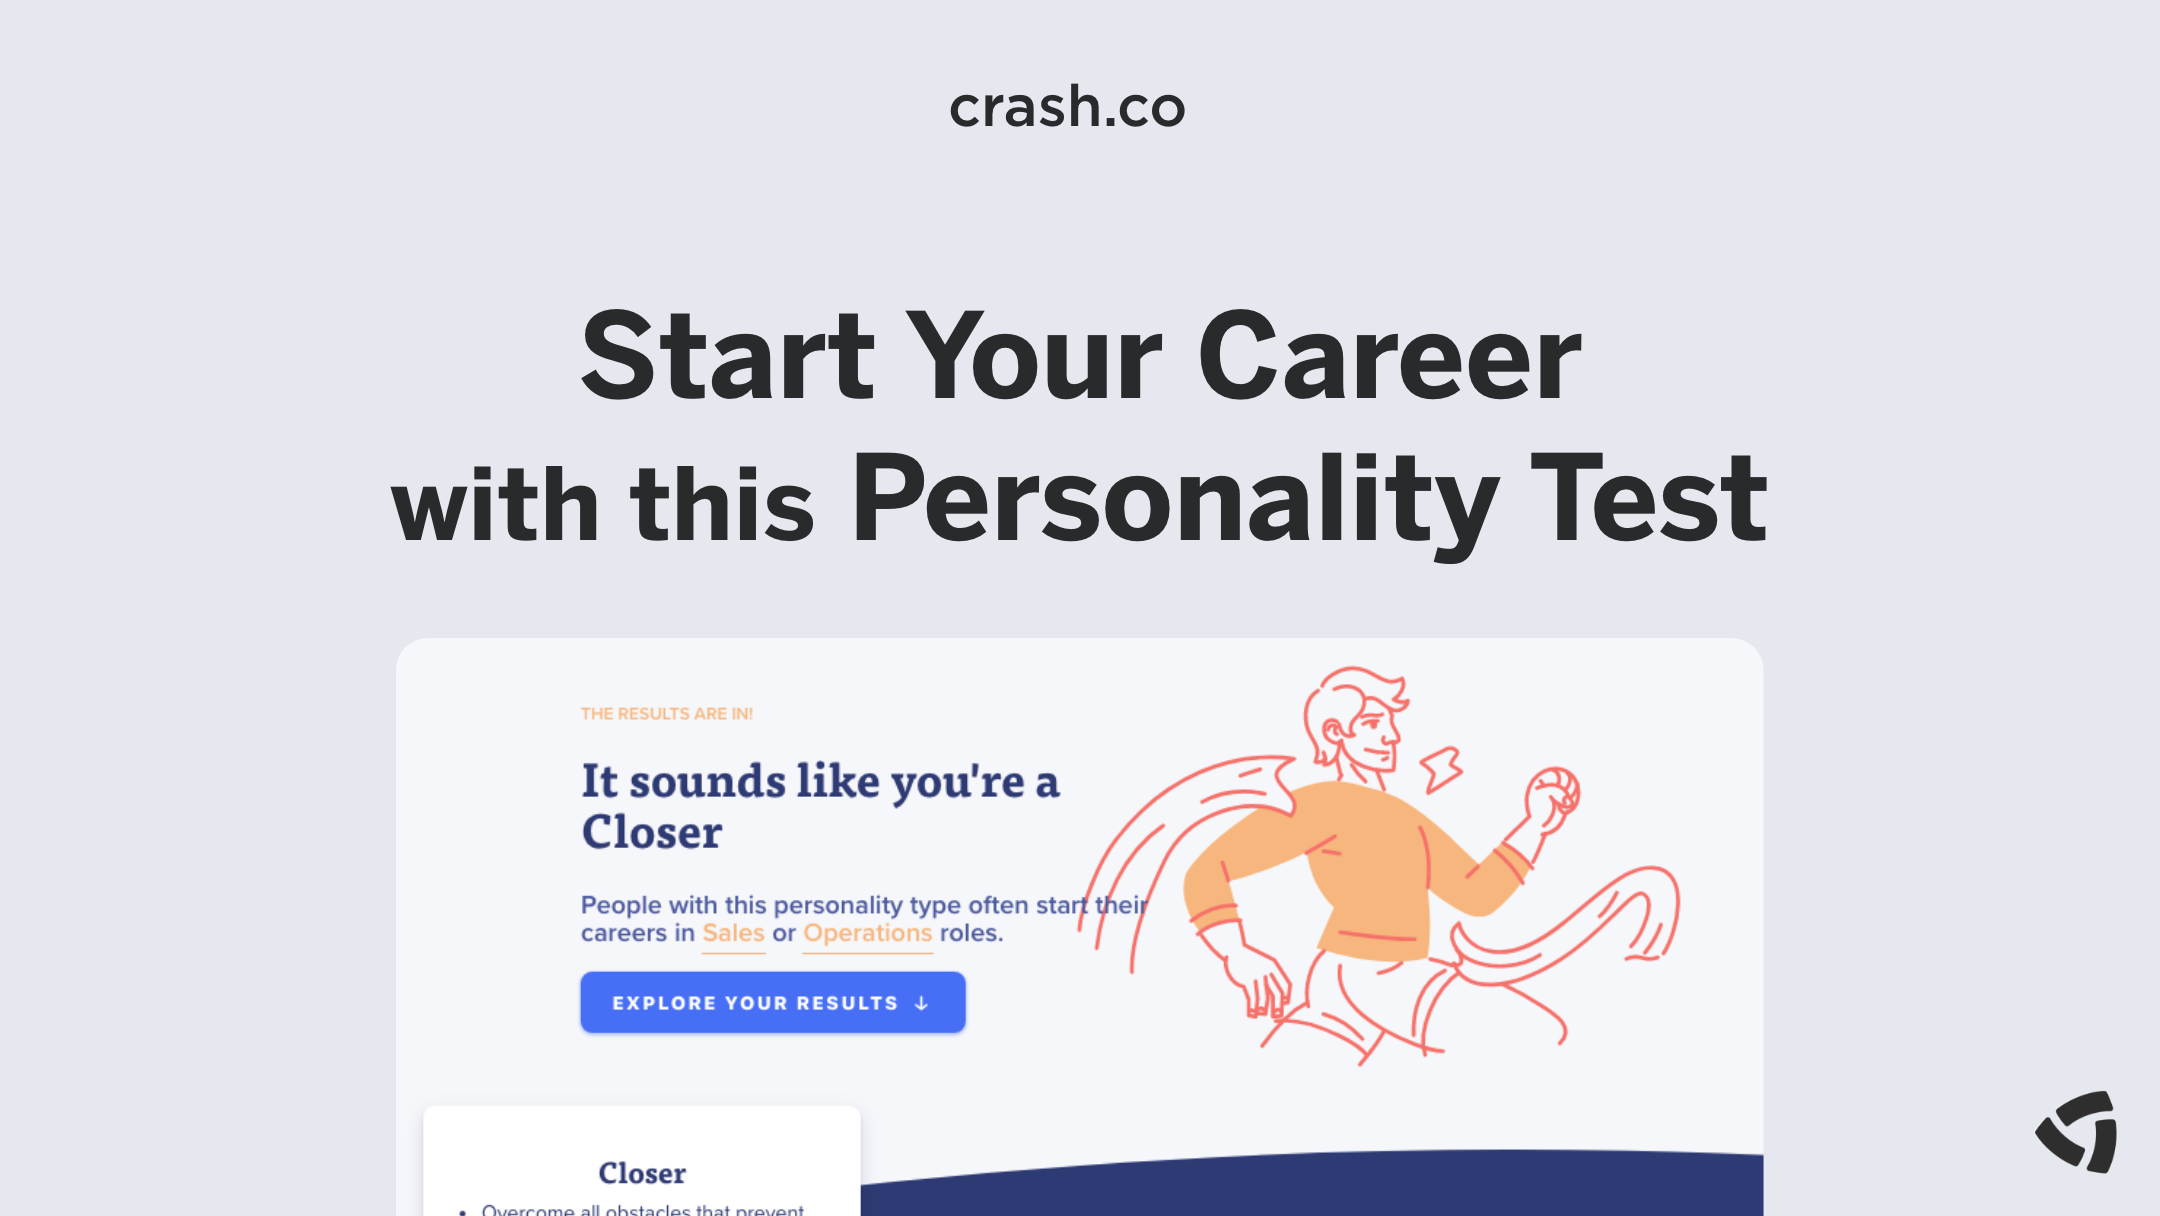 Start Your Career with this Personality Test